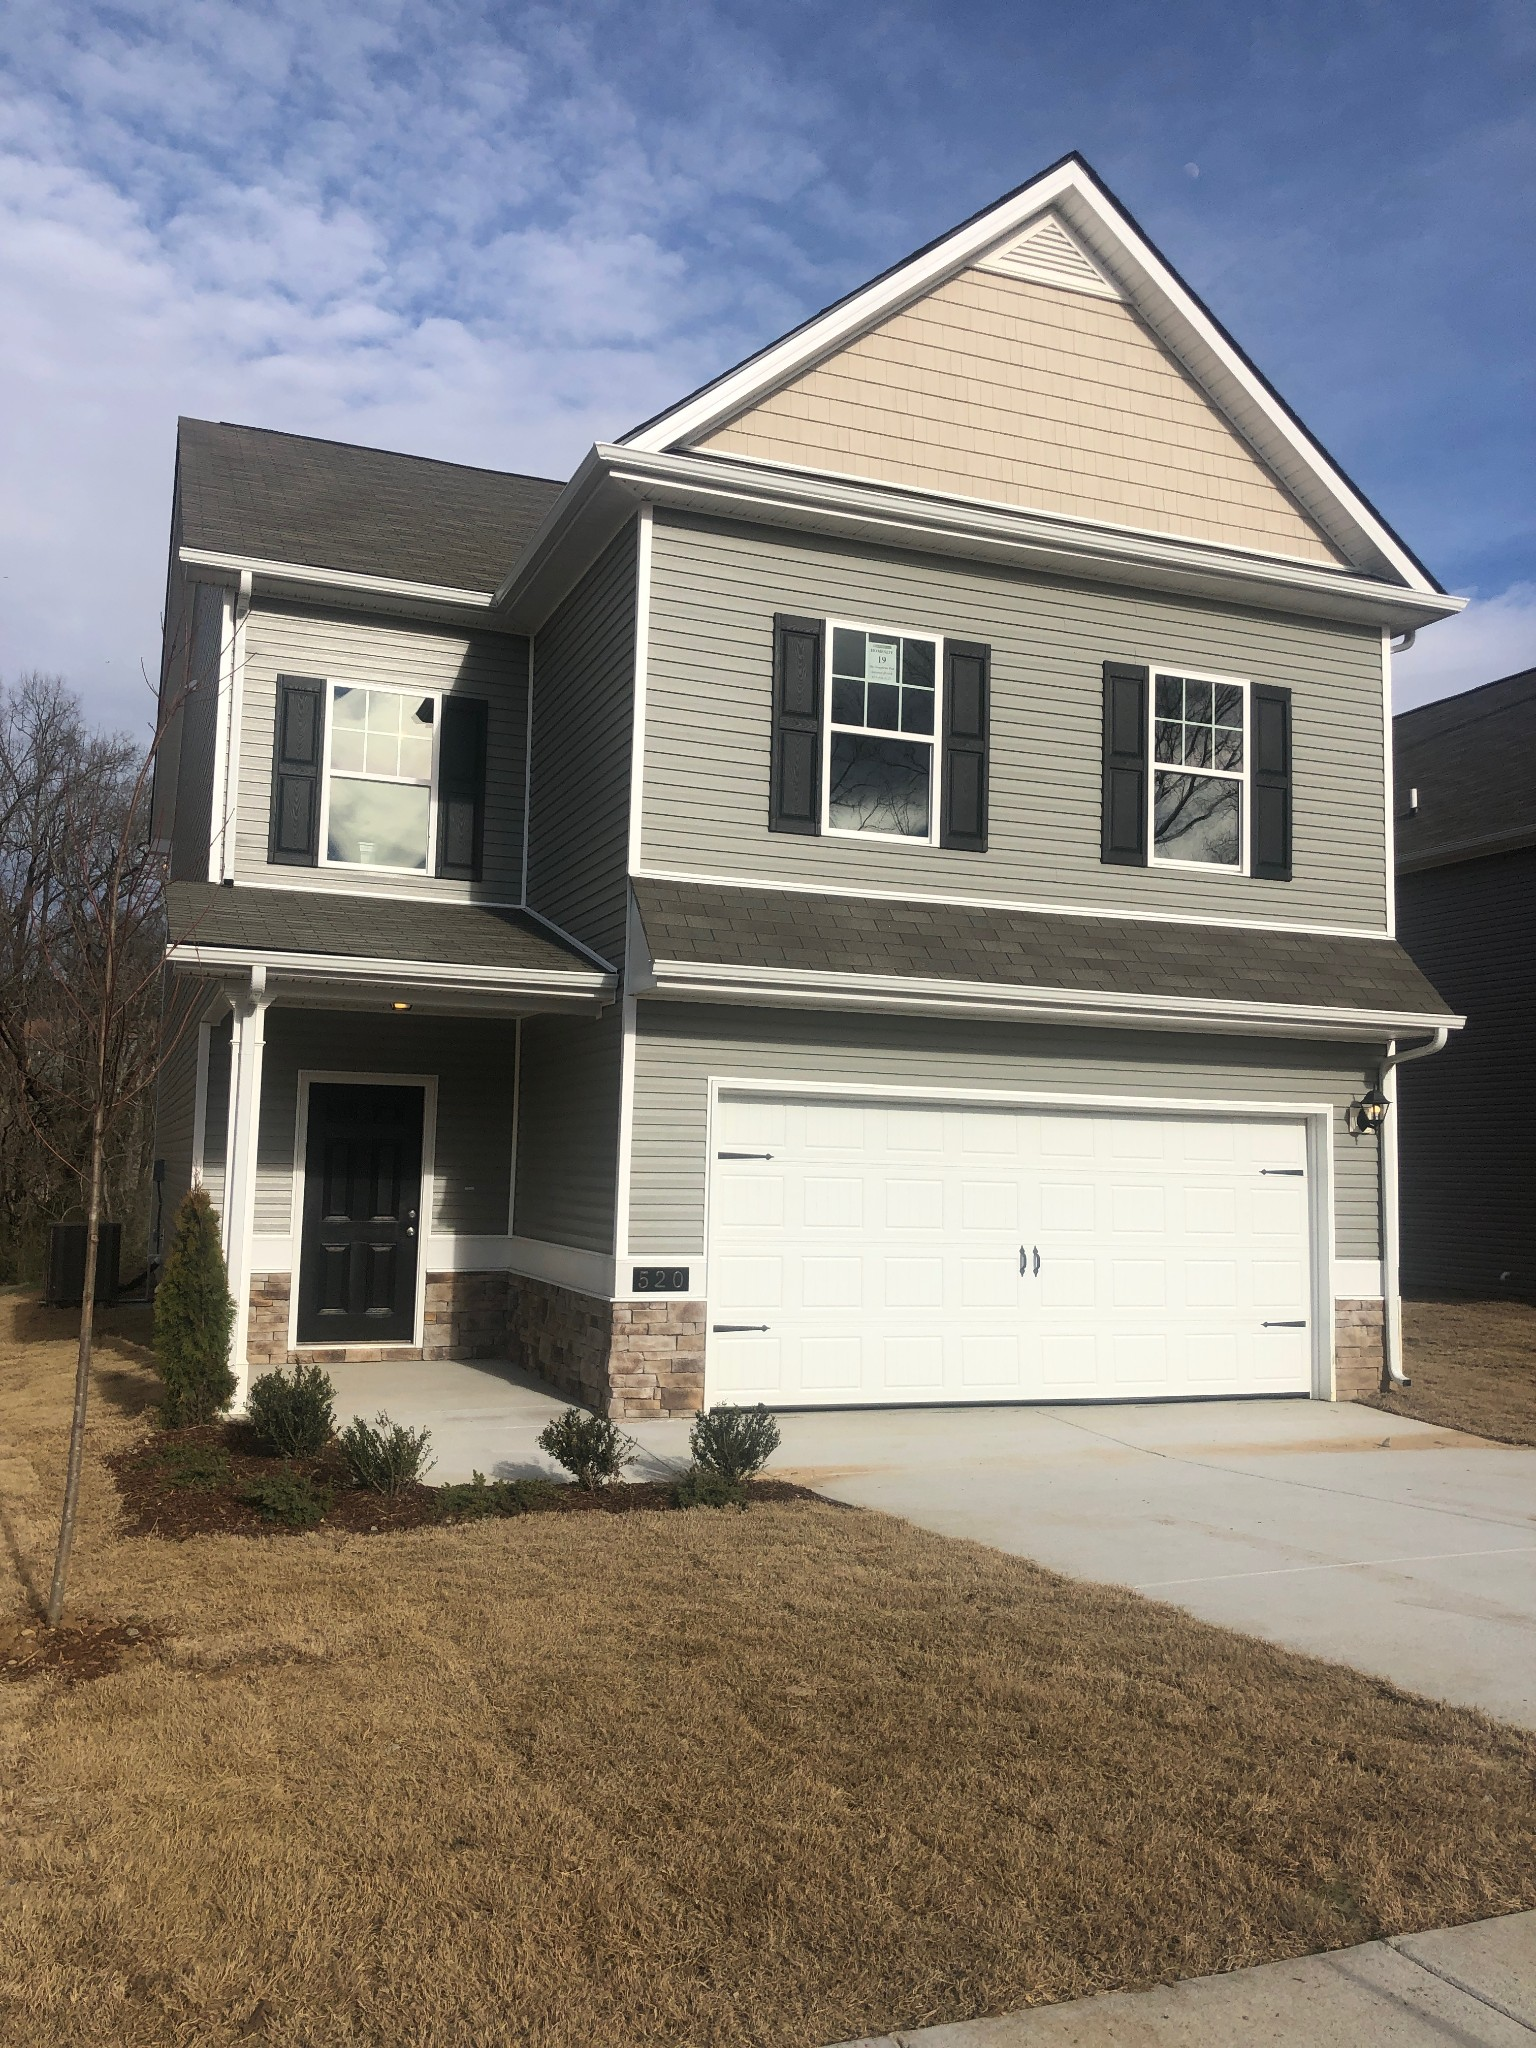 19 Burchell Lane (Lot 19) 38401 - One of Columbia Homes for Sale